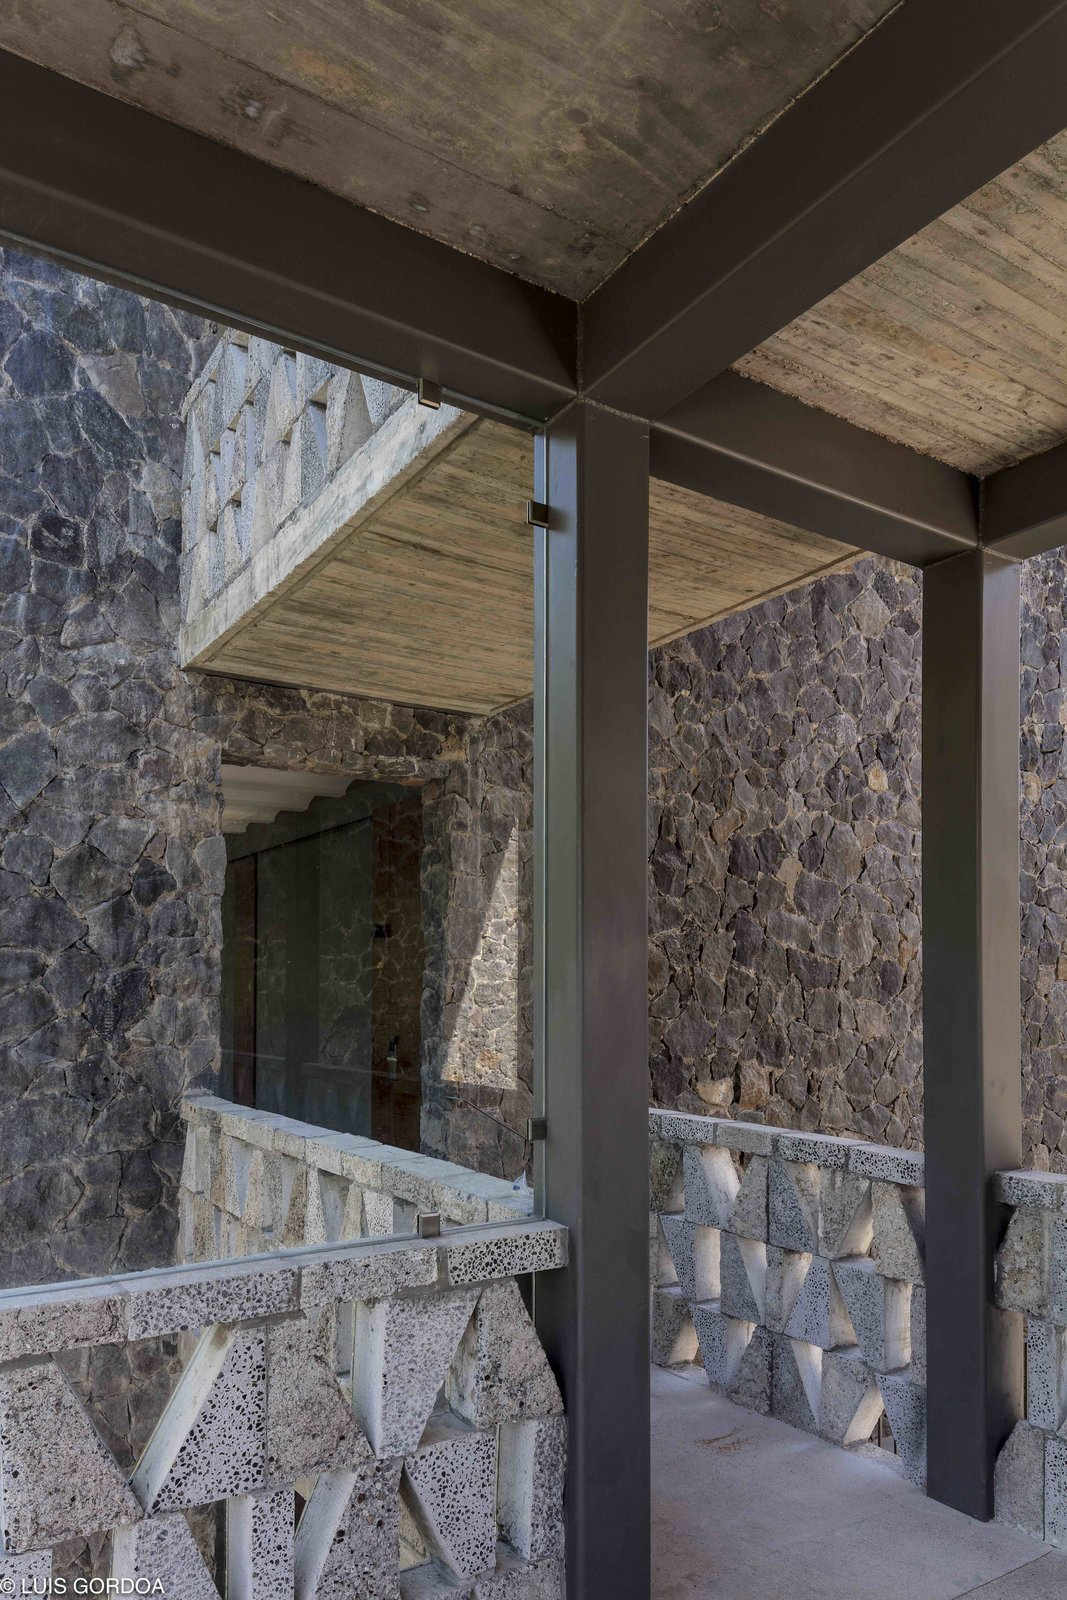 Hallway and Concrete Floor  Photo 11 of 12 in A New Hotel in Morelos Combines Local Mexican Elements With Brutalist Architecture